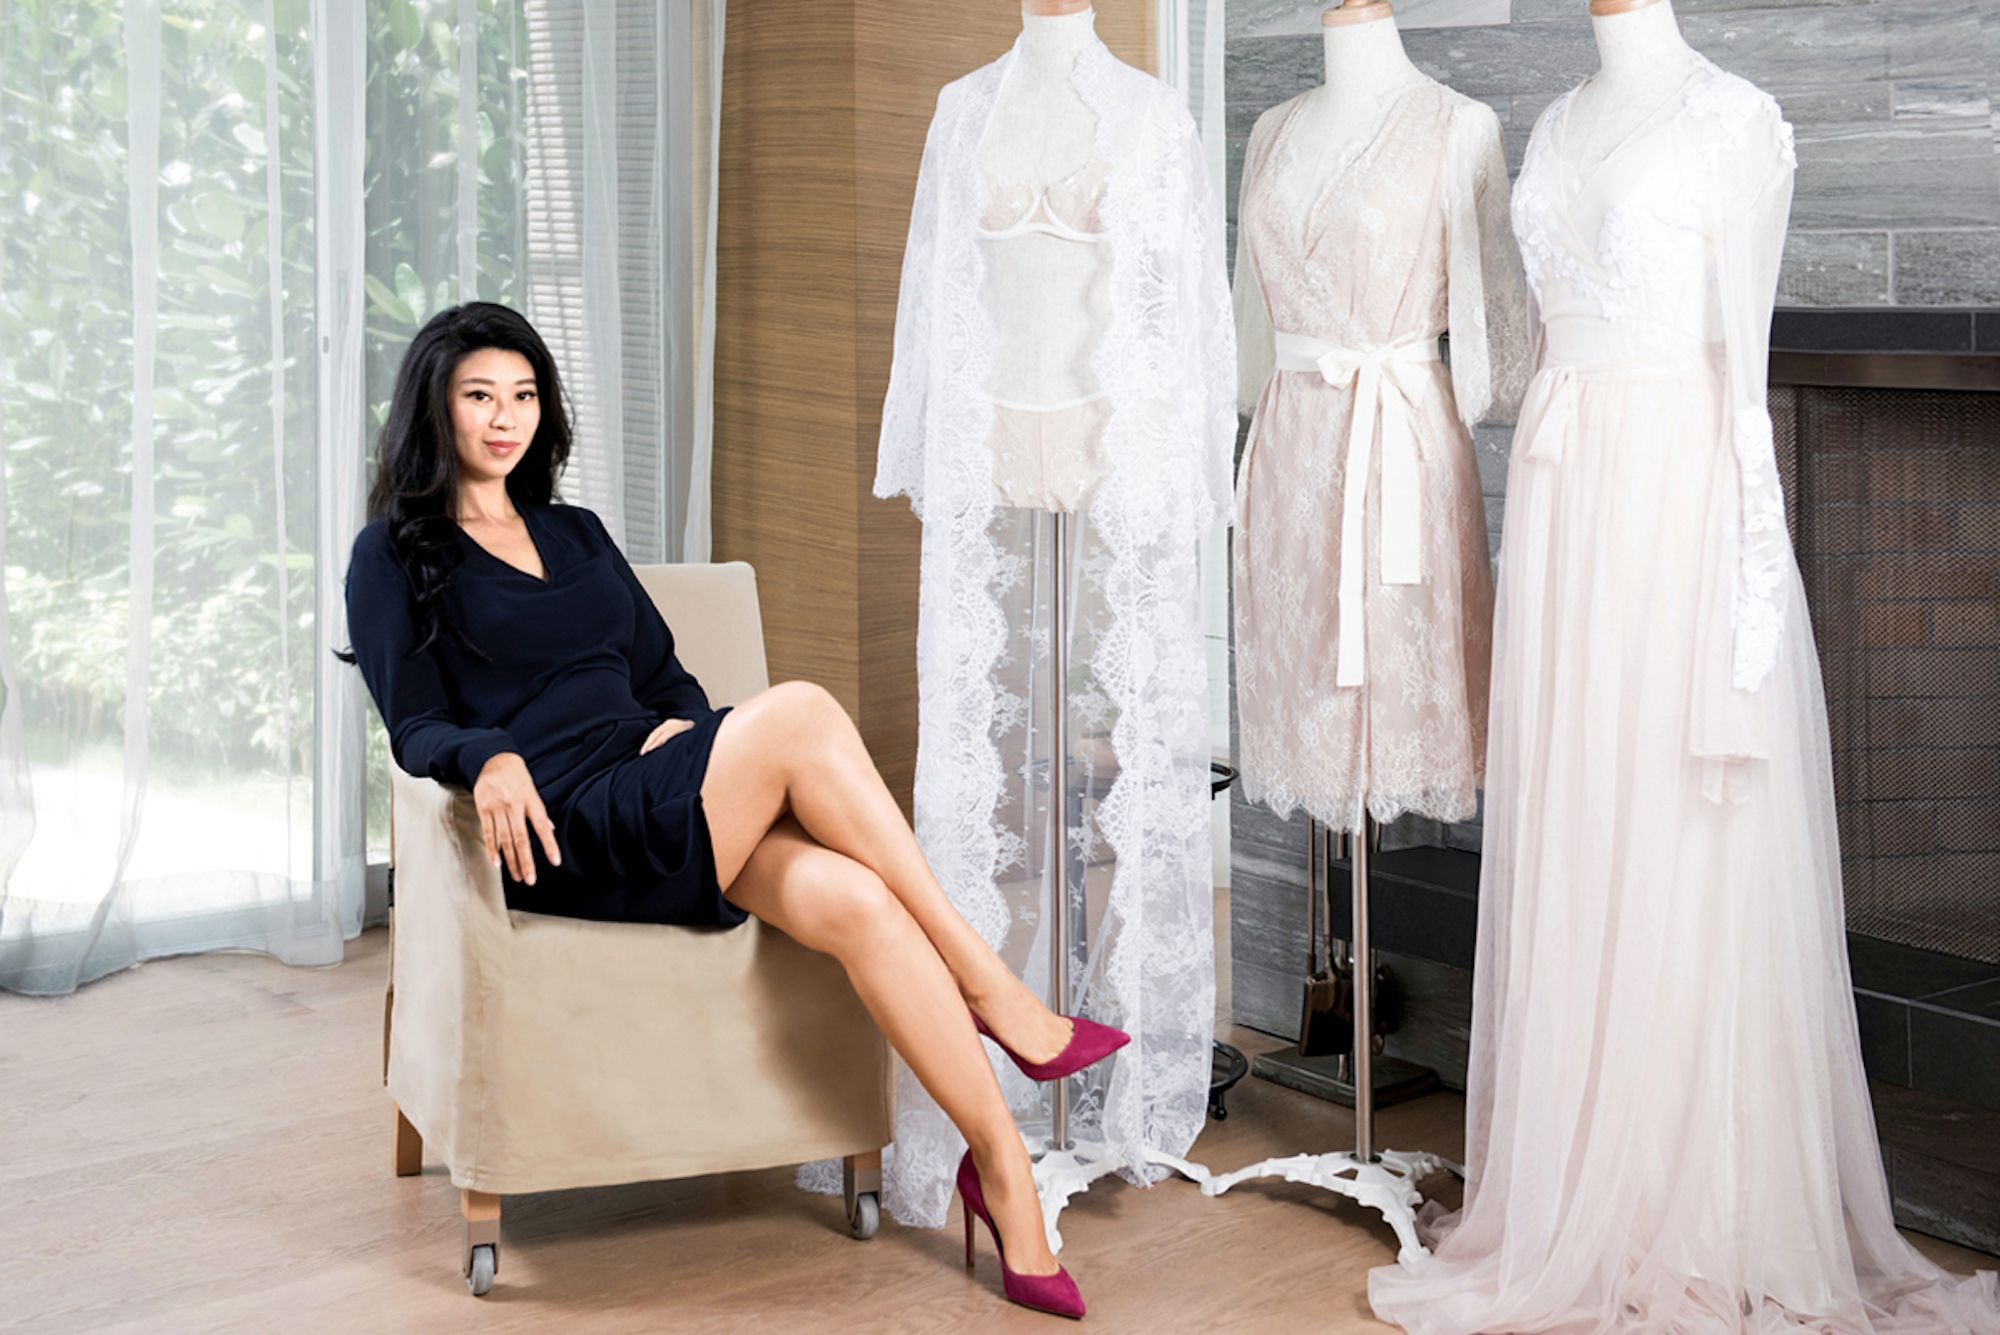 The Tatler 10: Christy Liang Of The Lace Atelier